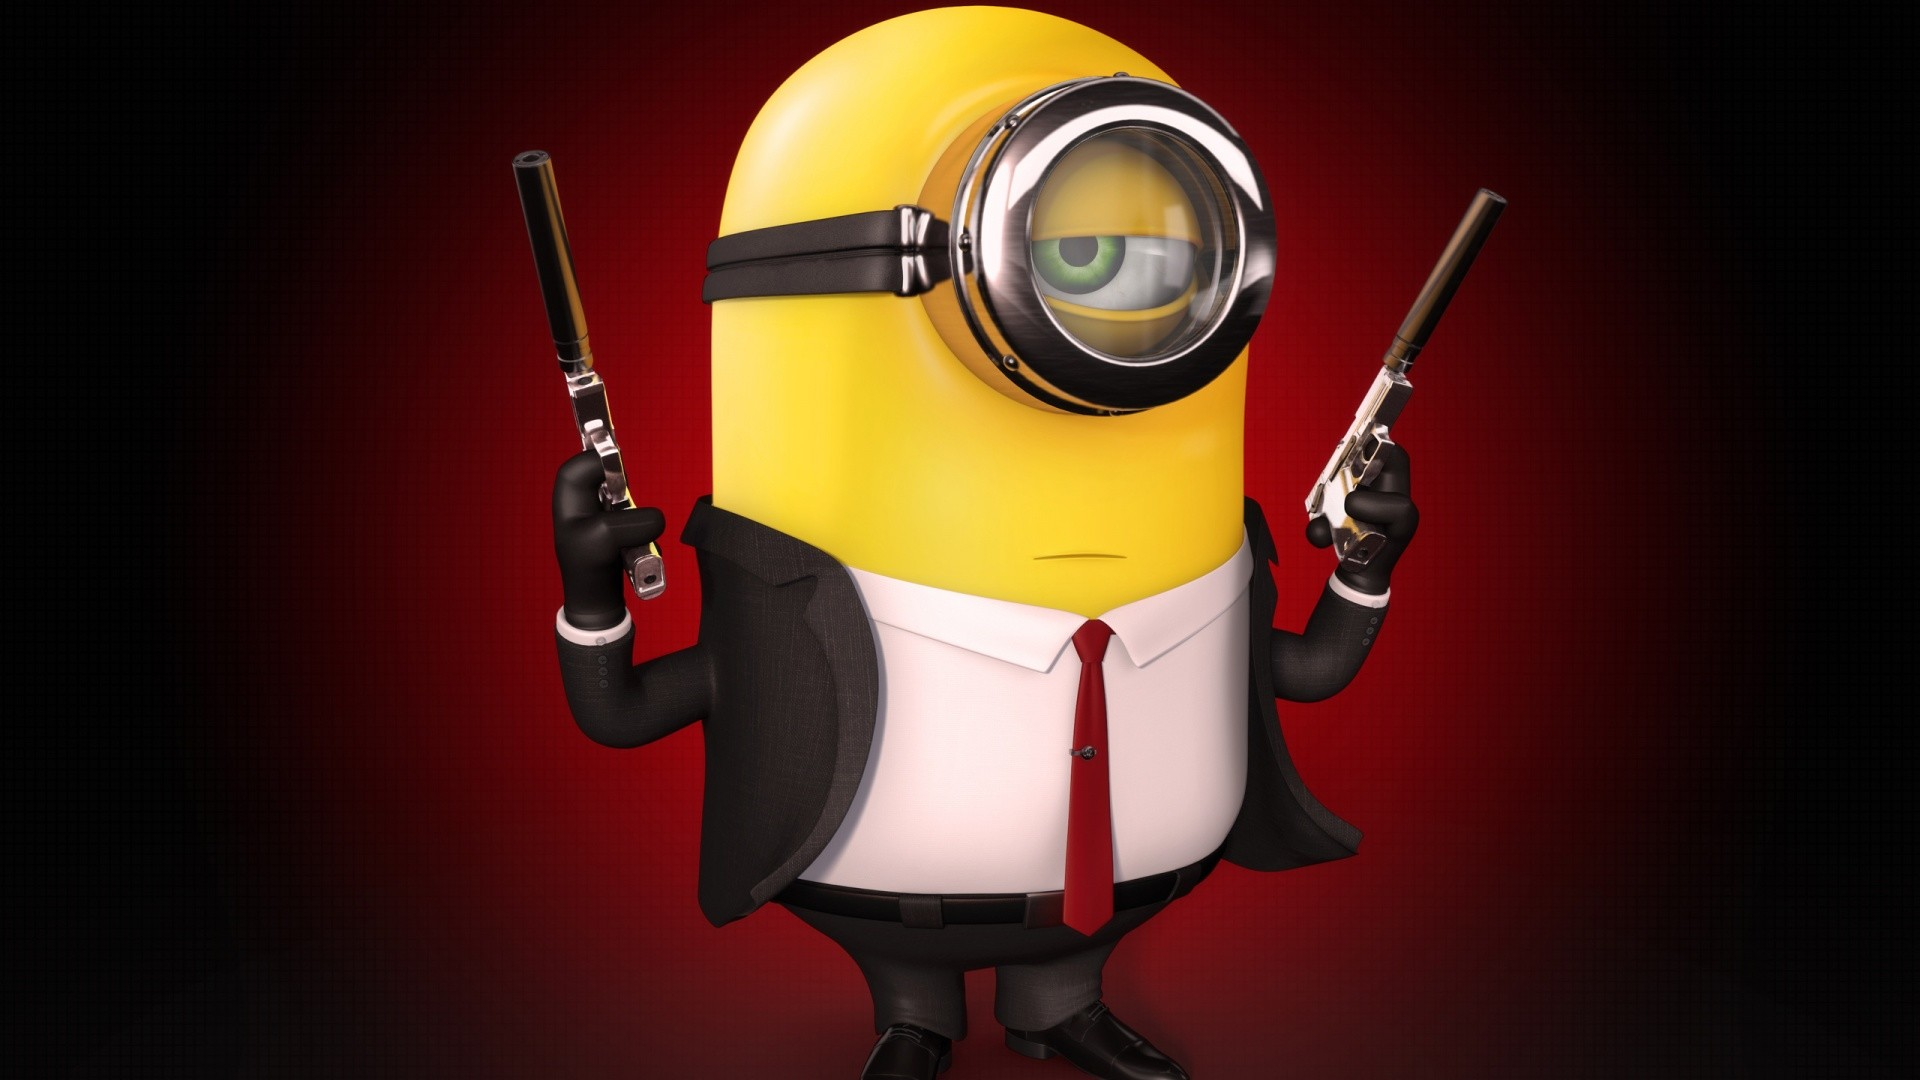 1920x1080 minion-agent-3d-wallpaper-picture-desktop-mobile-free-878389829883.jpg